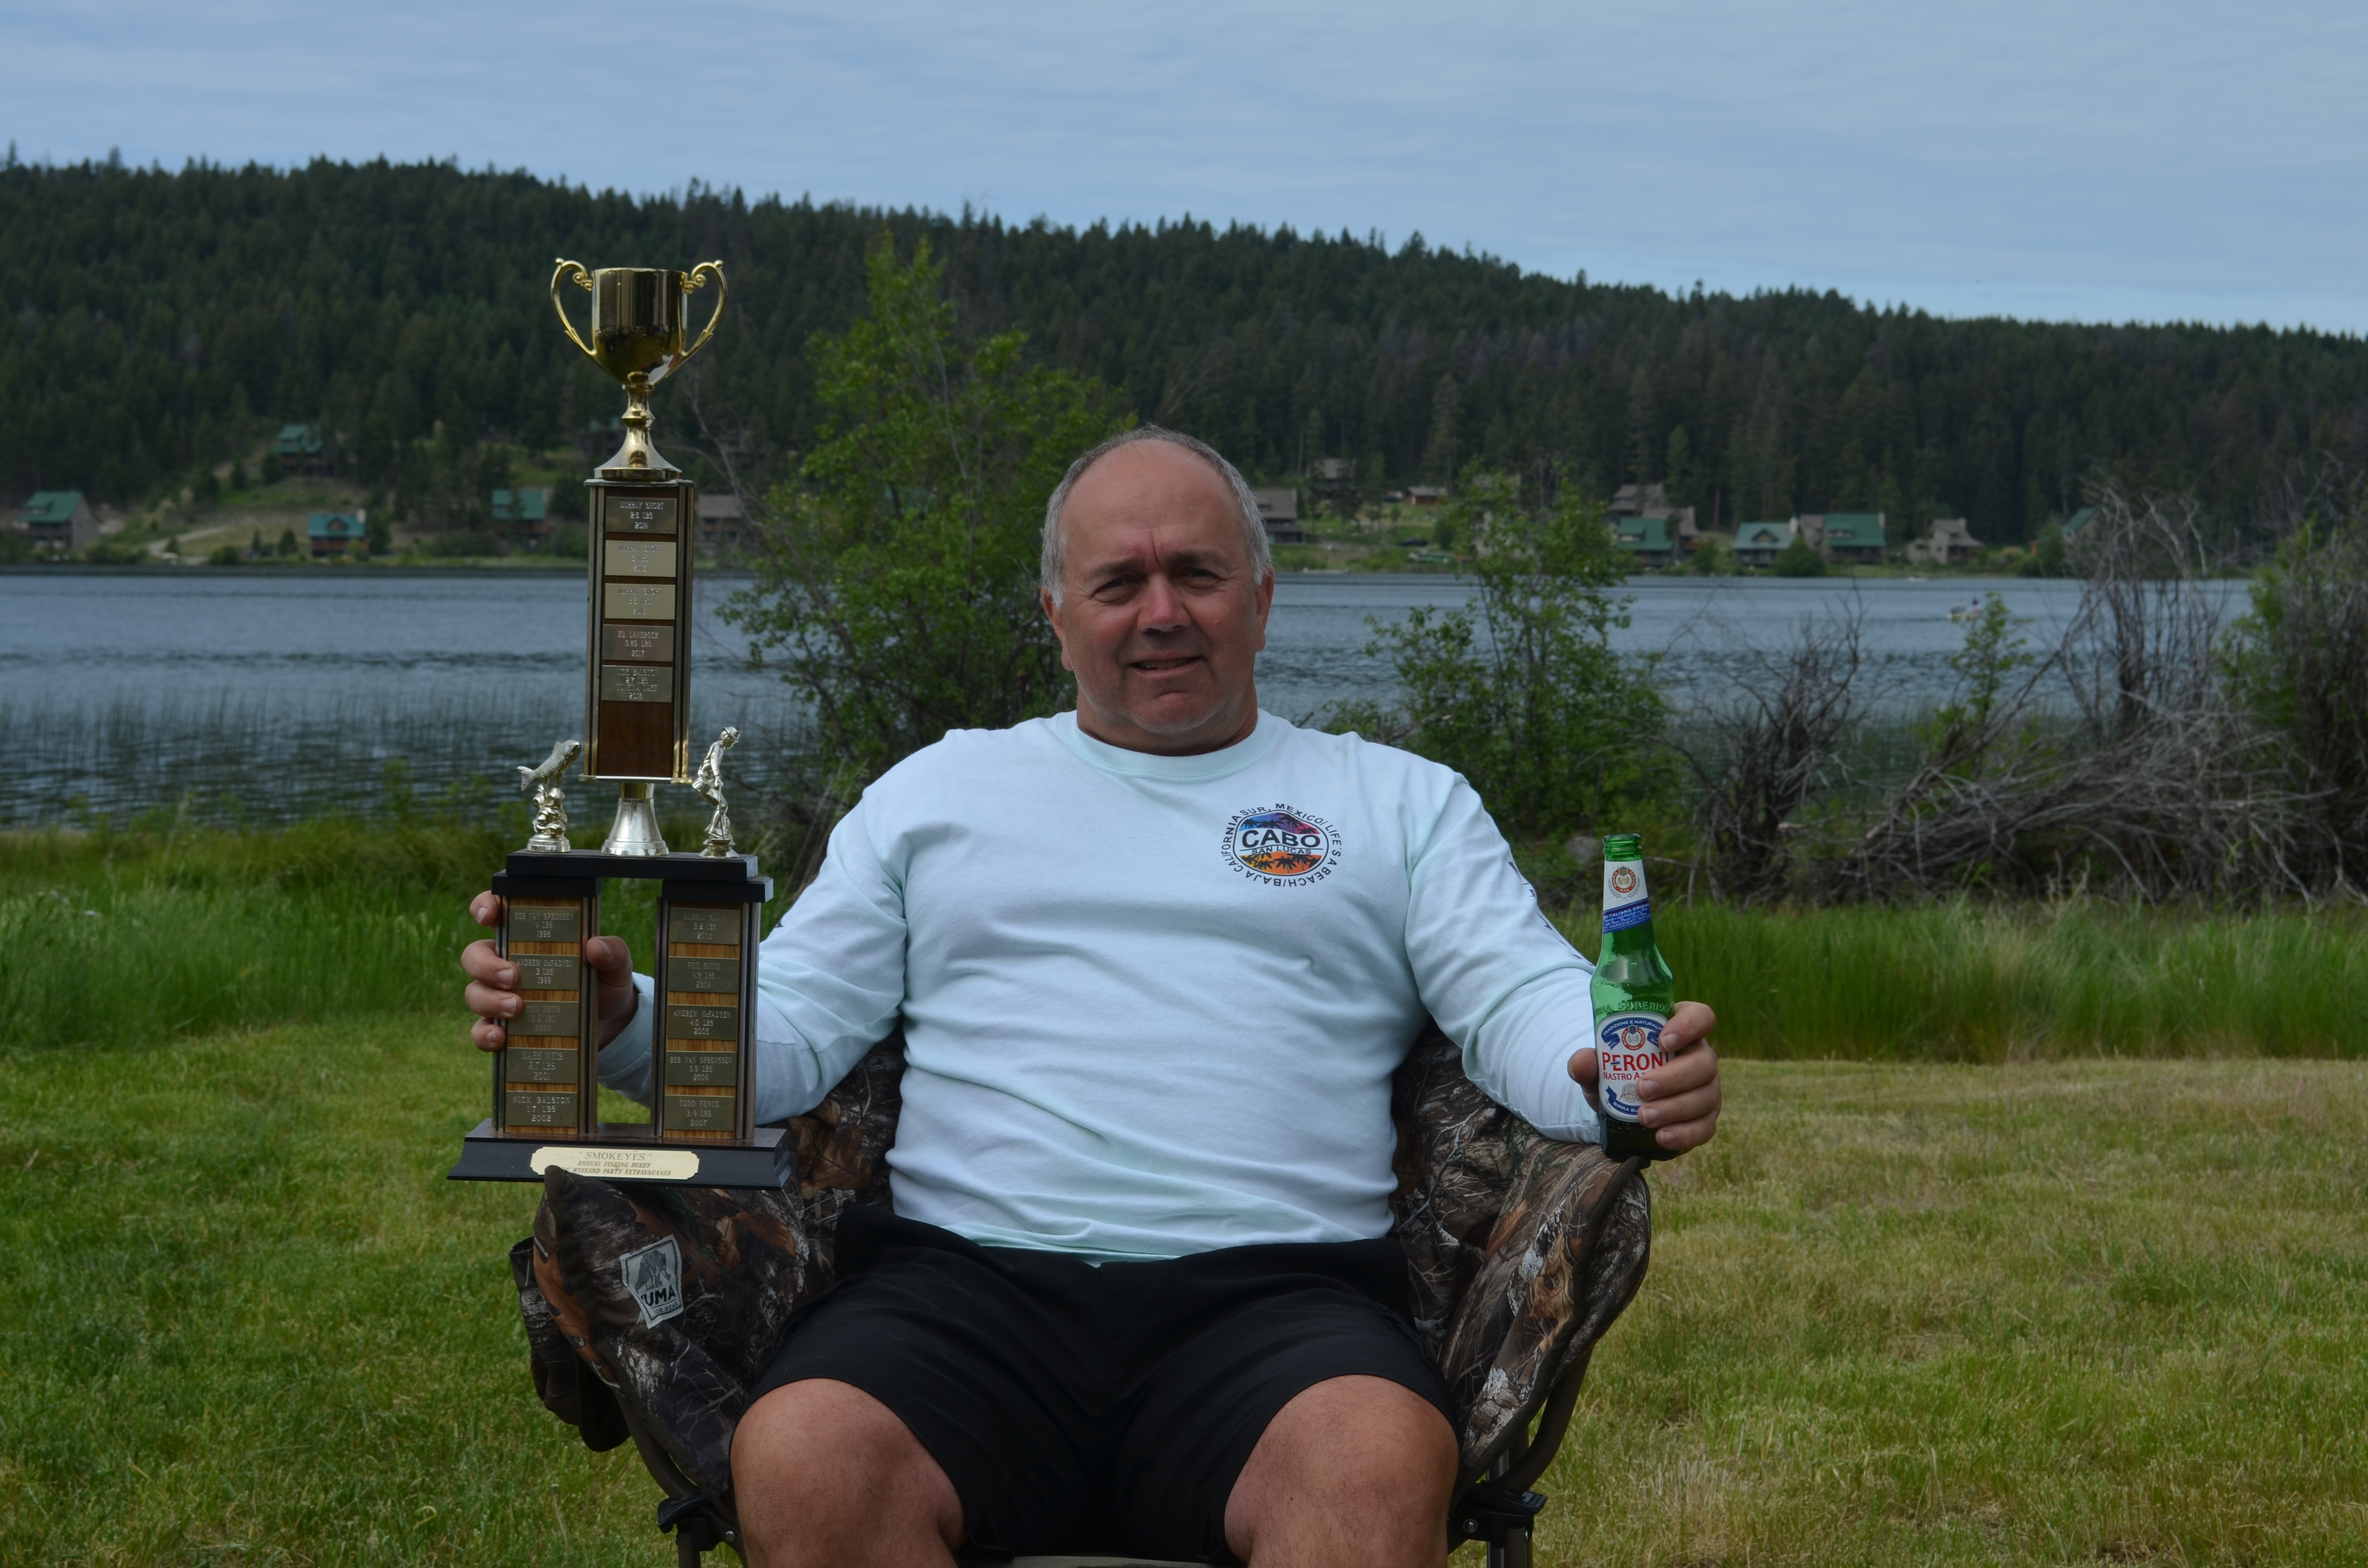 Nick wins, including the great chair from Murray GM Merritt